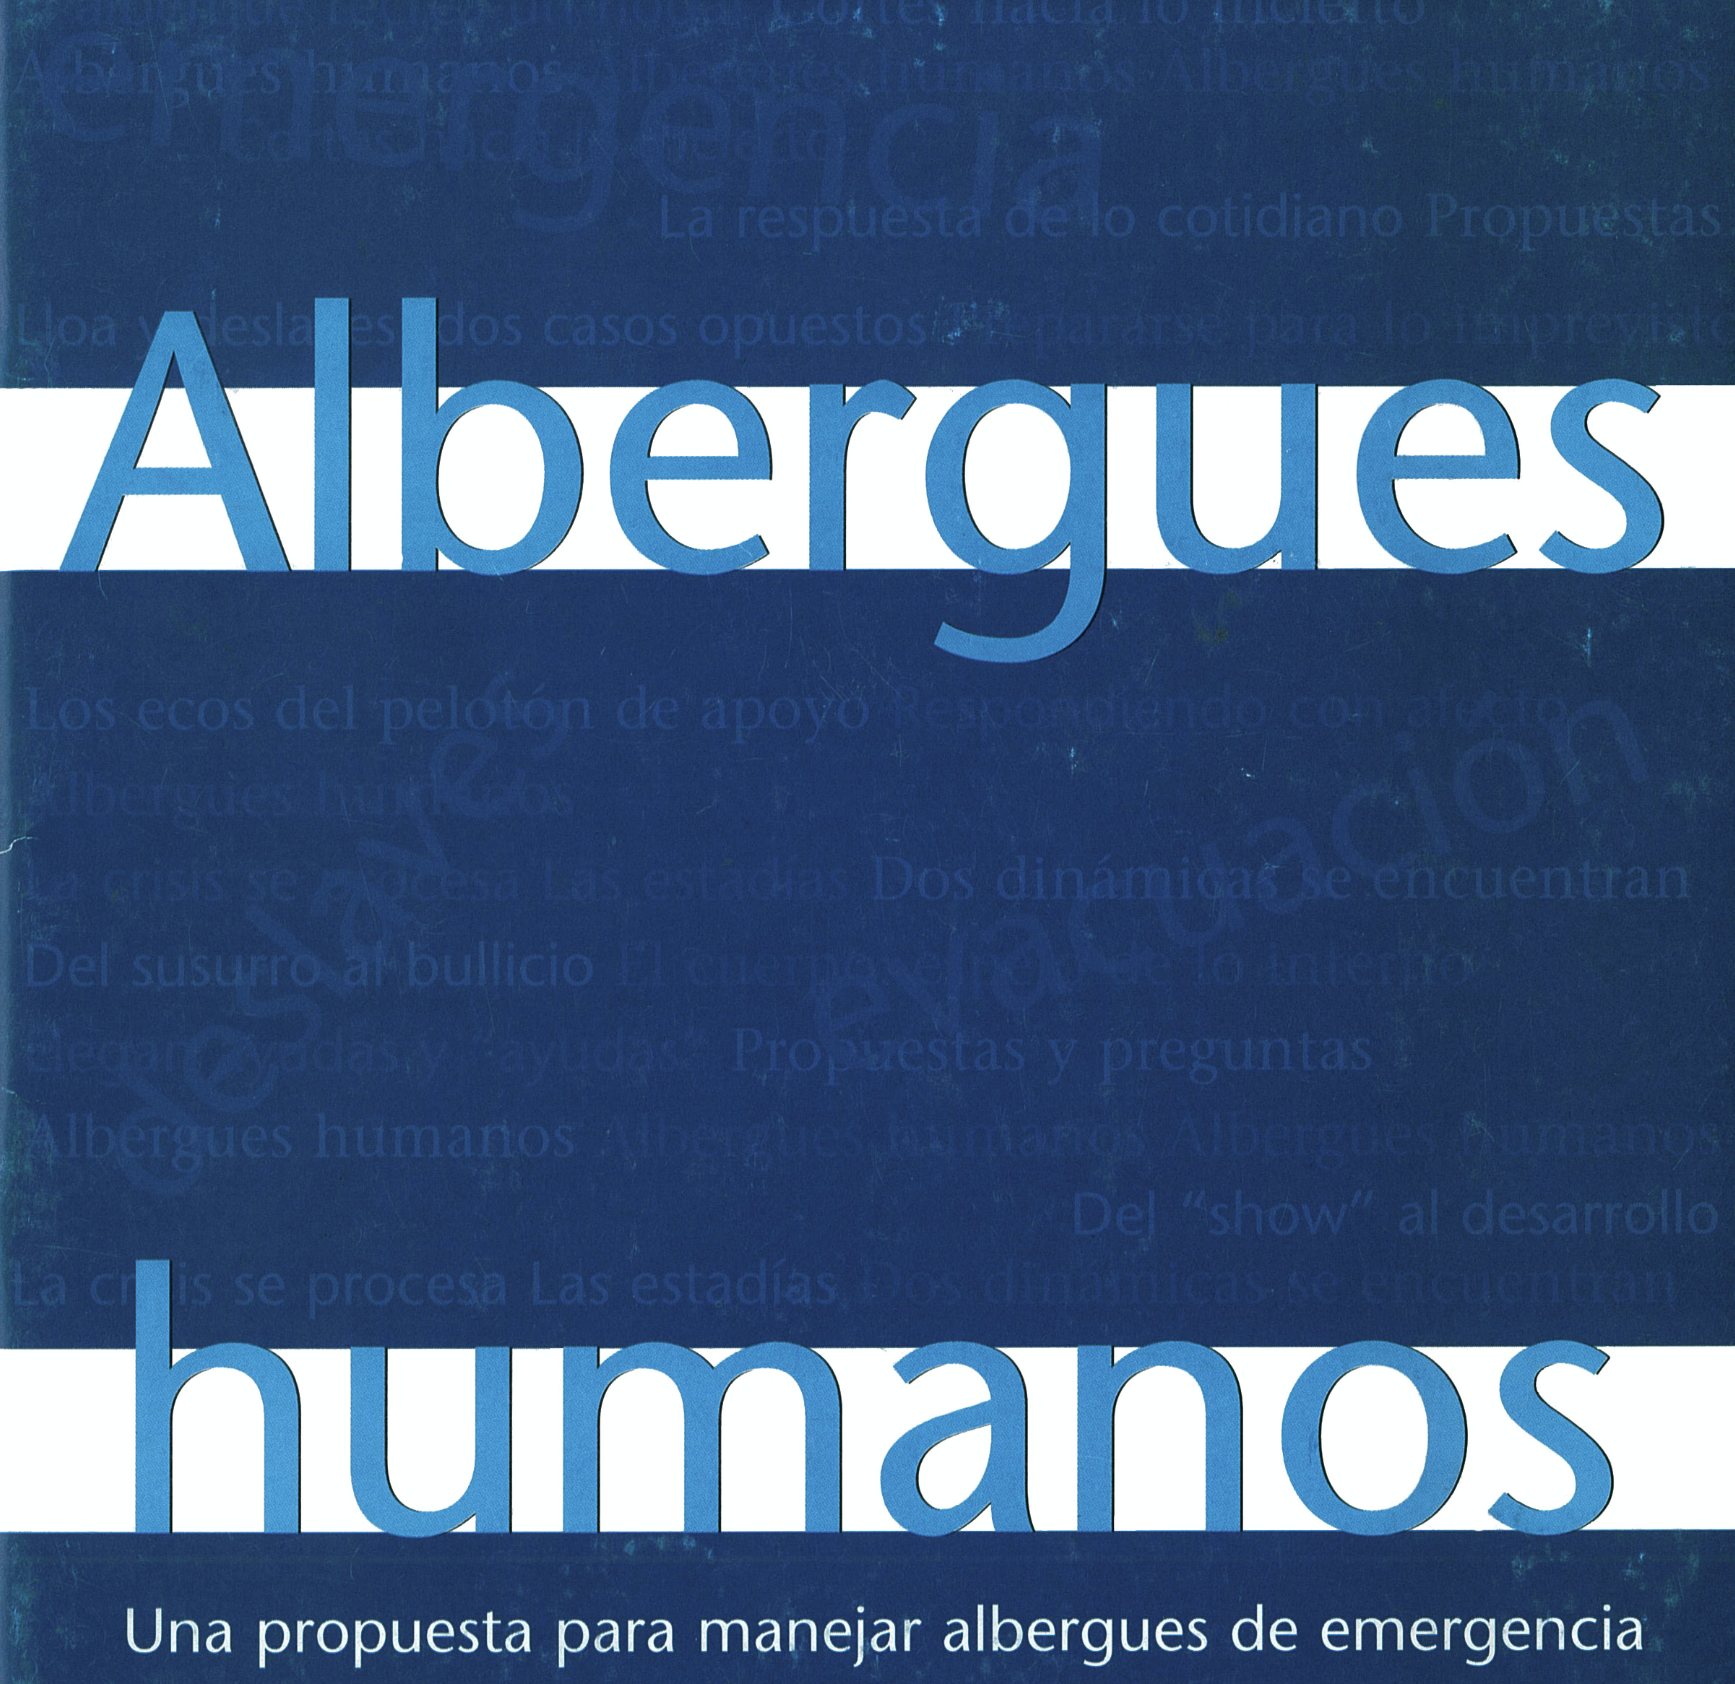 Albergues humanos